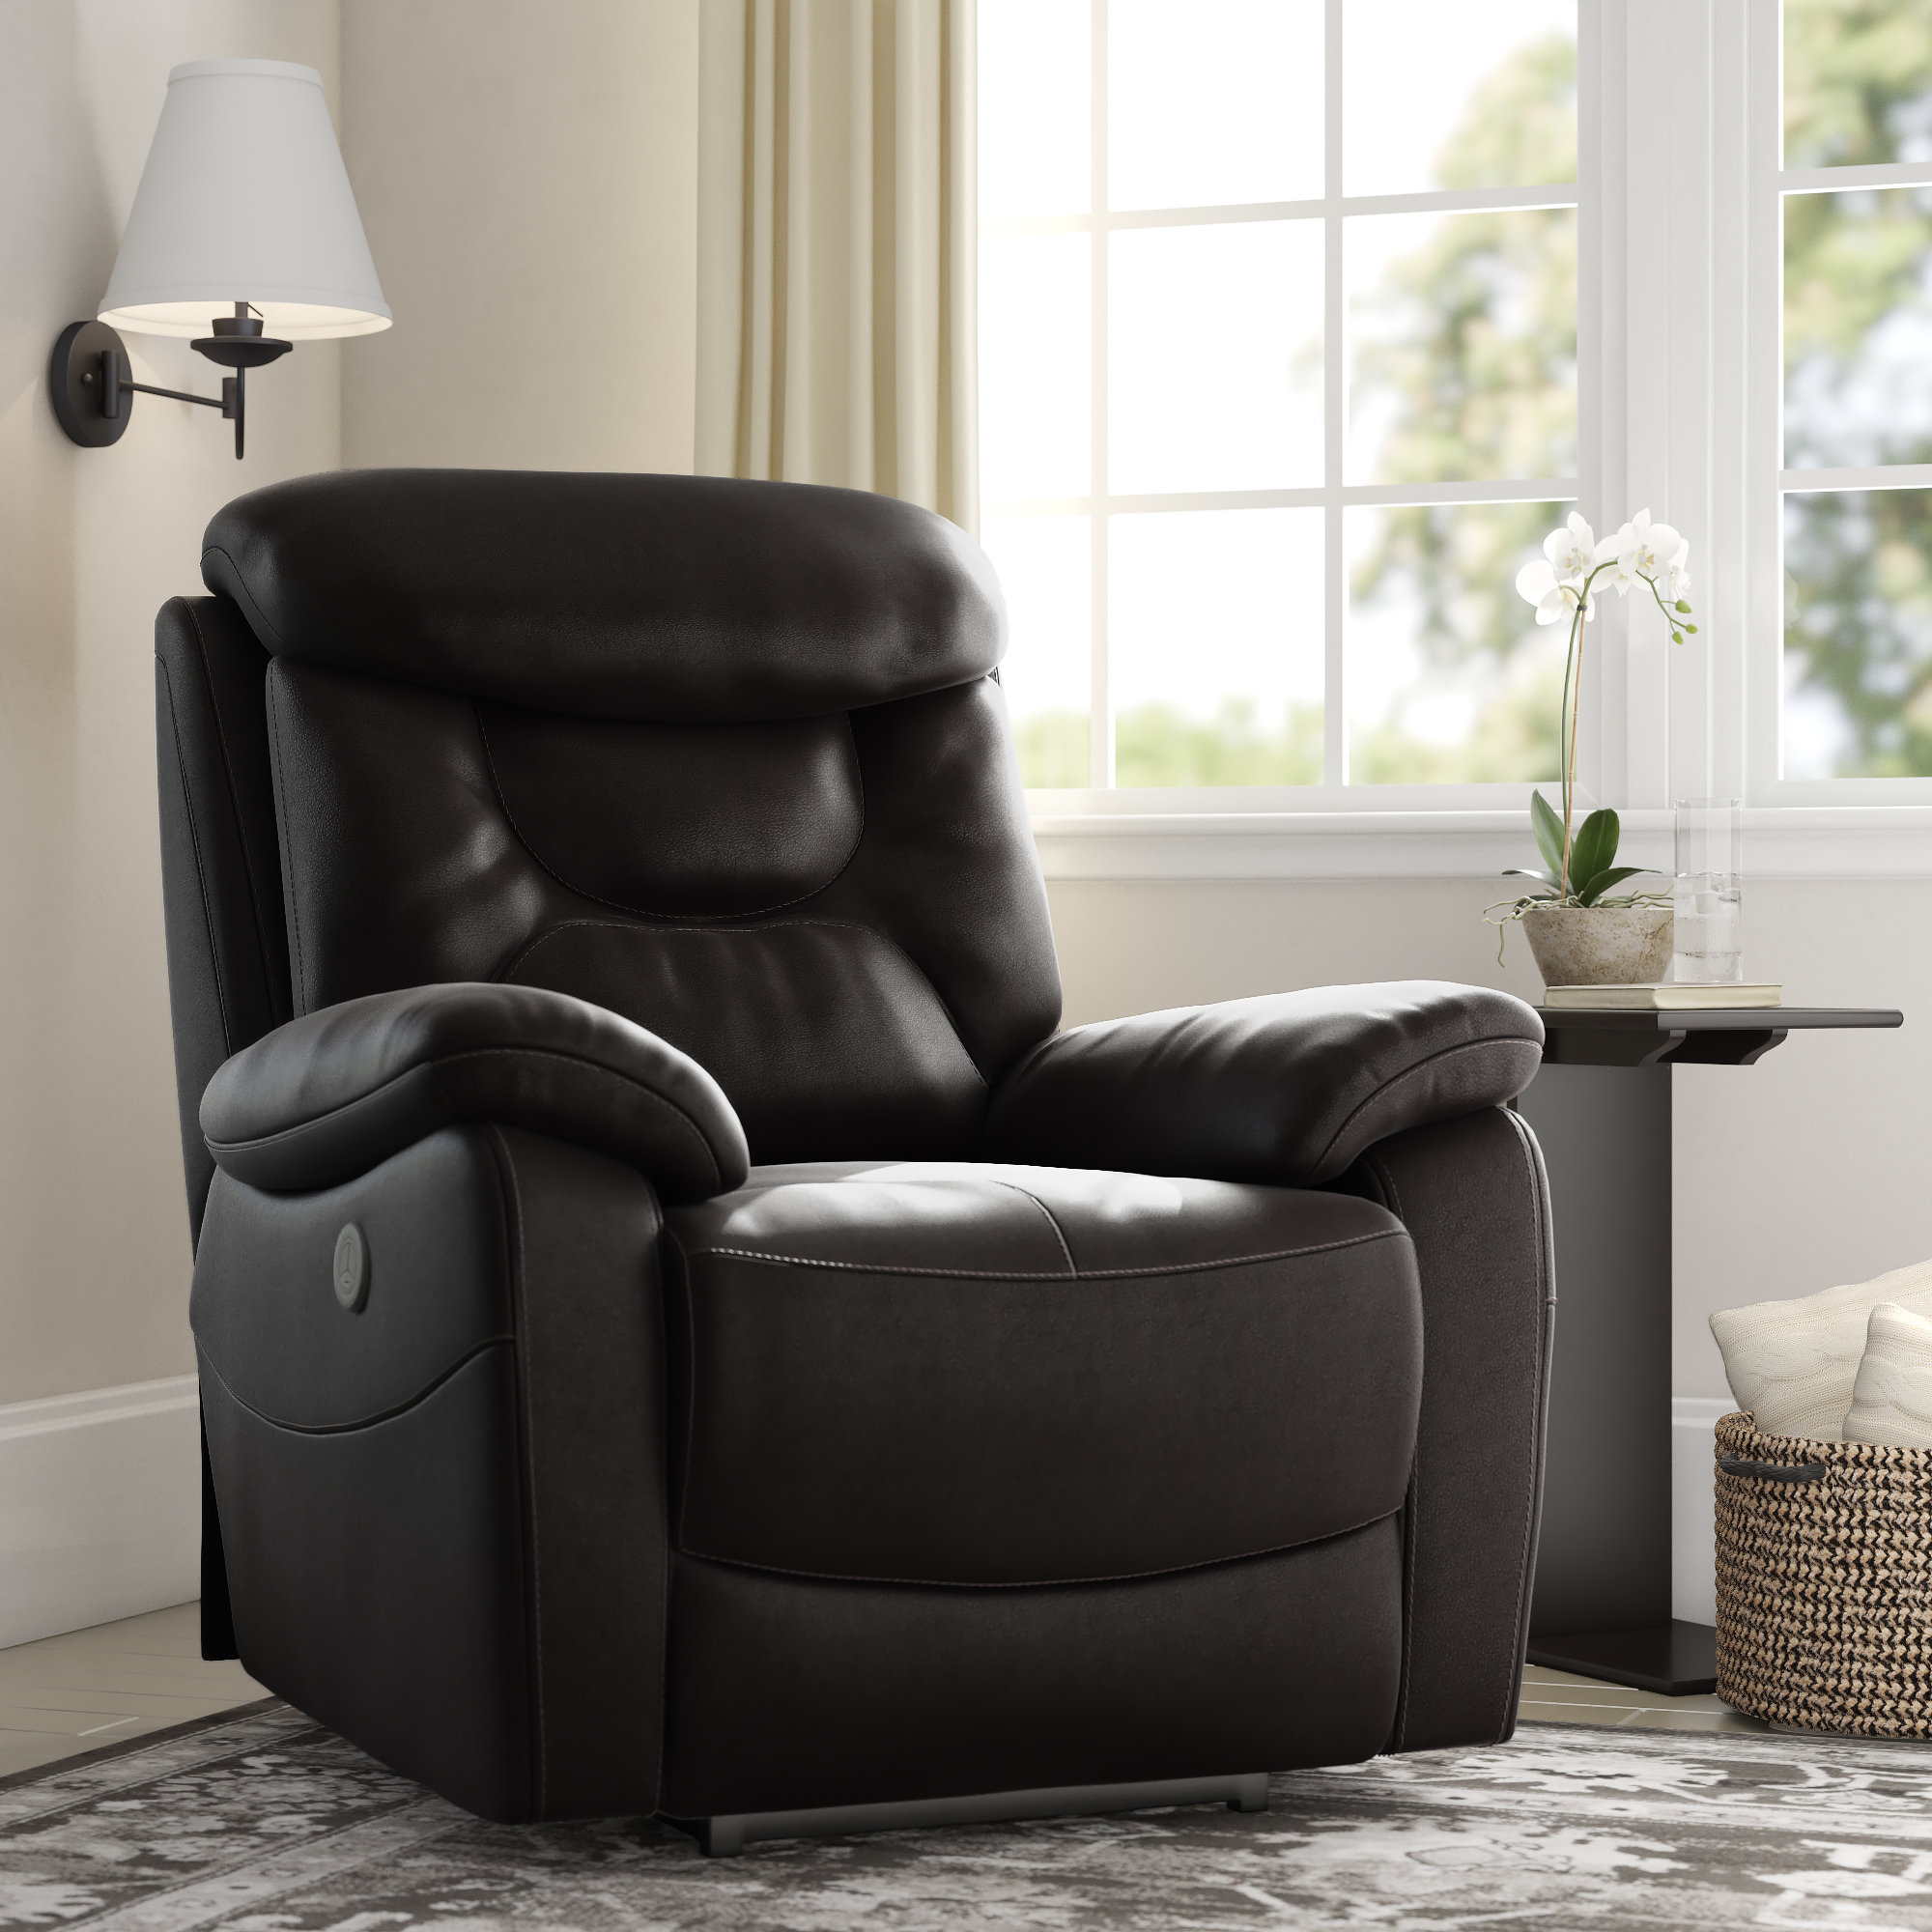 Red Barrel Studio Oh Leather Power Recliner & Reviews | Wayfair For Cohen Foam Oversized Sofa Chairs (View 15 of 20)